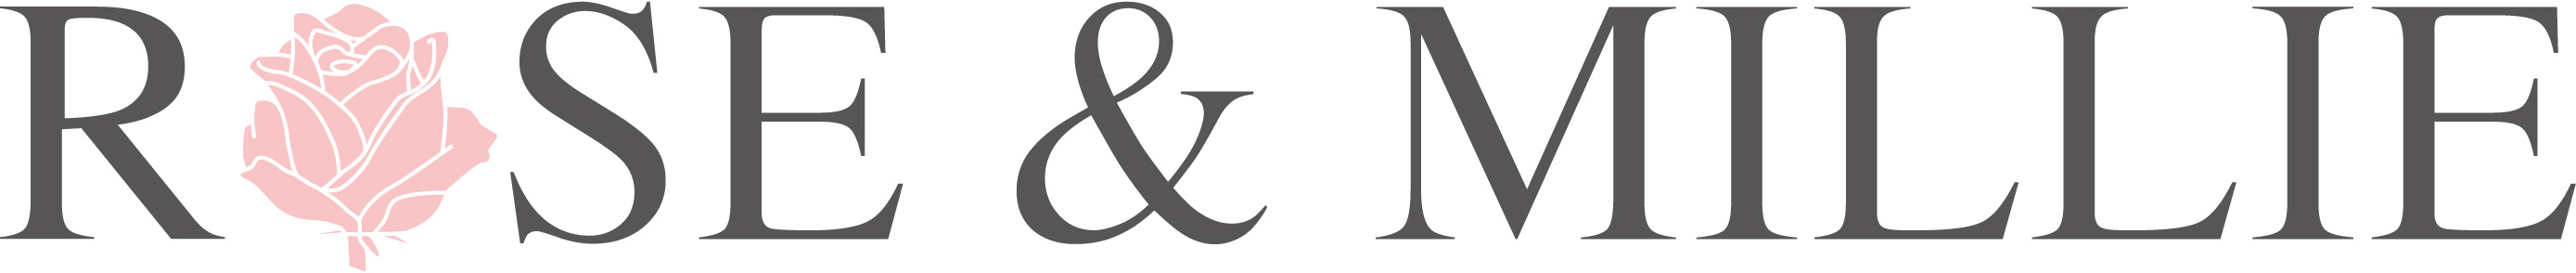 Rose & Millie Logo